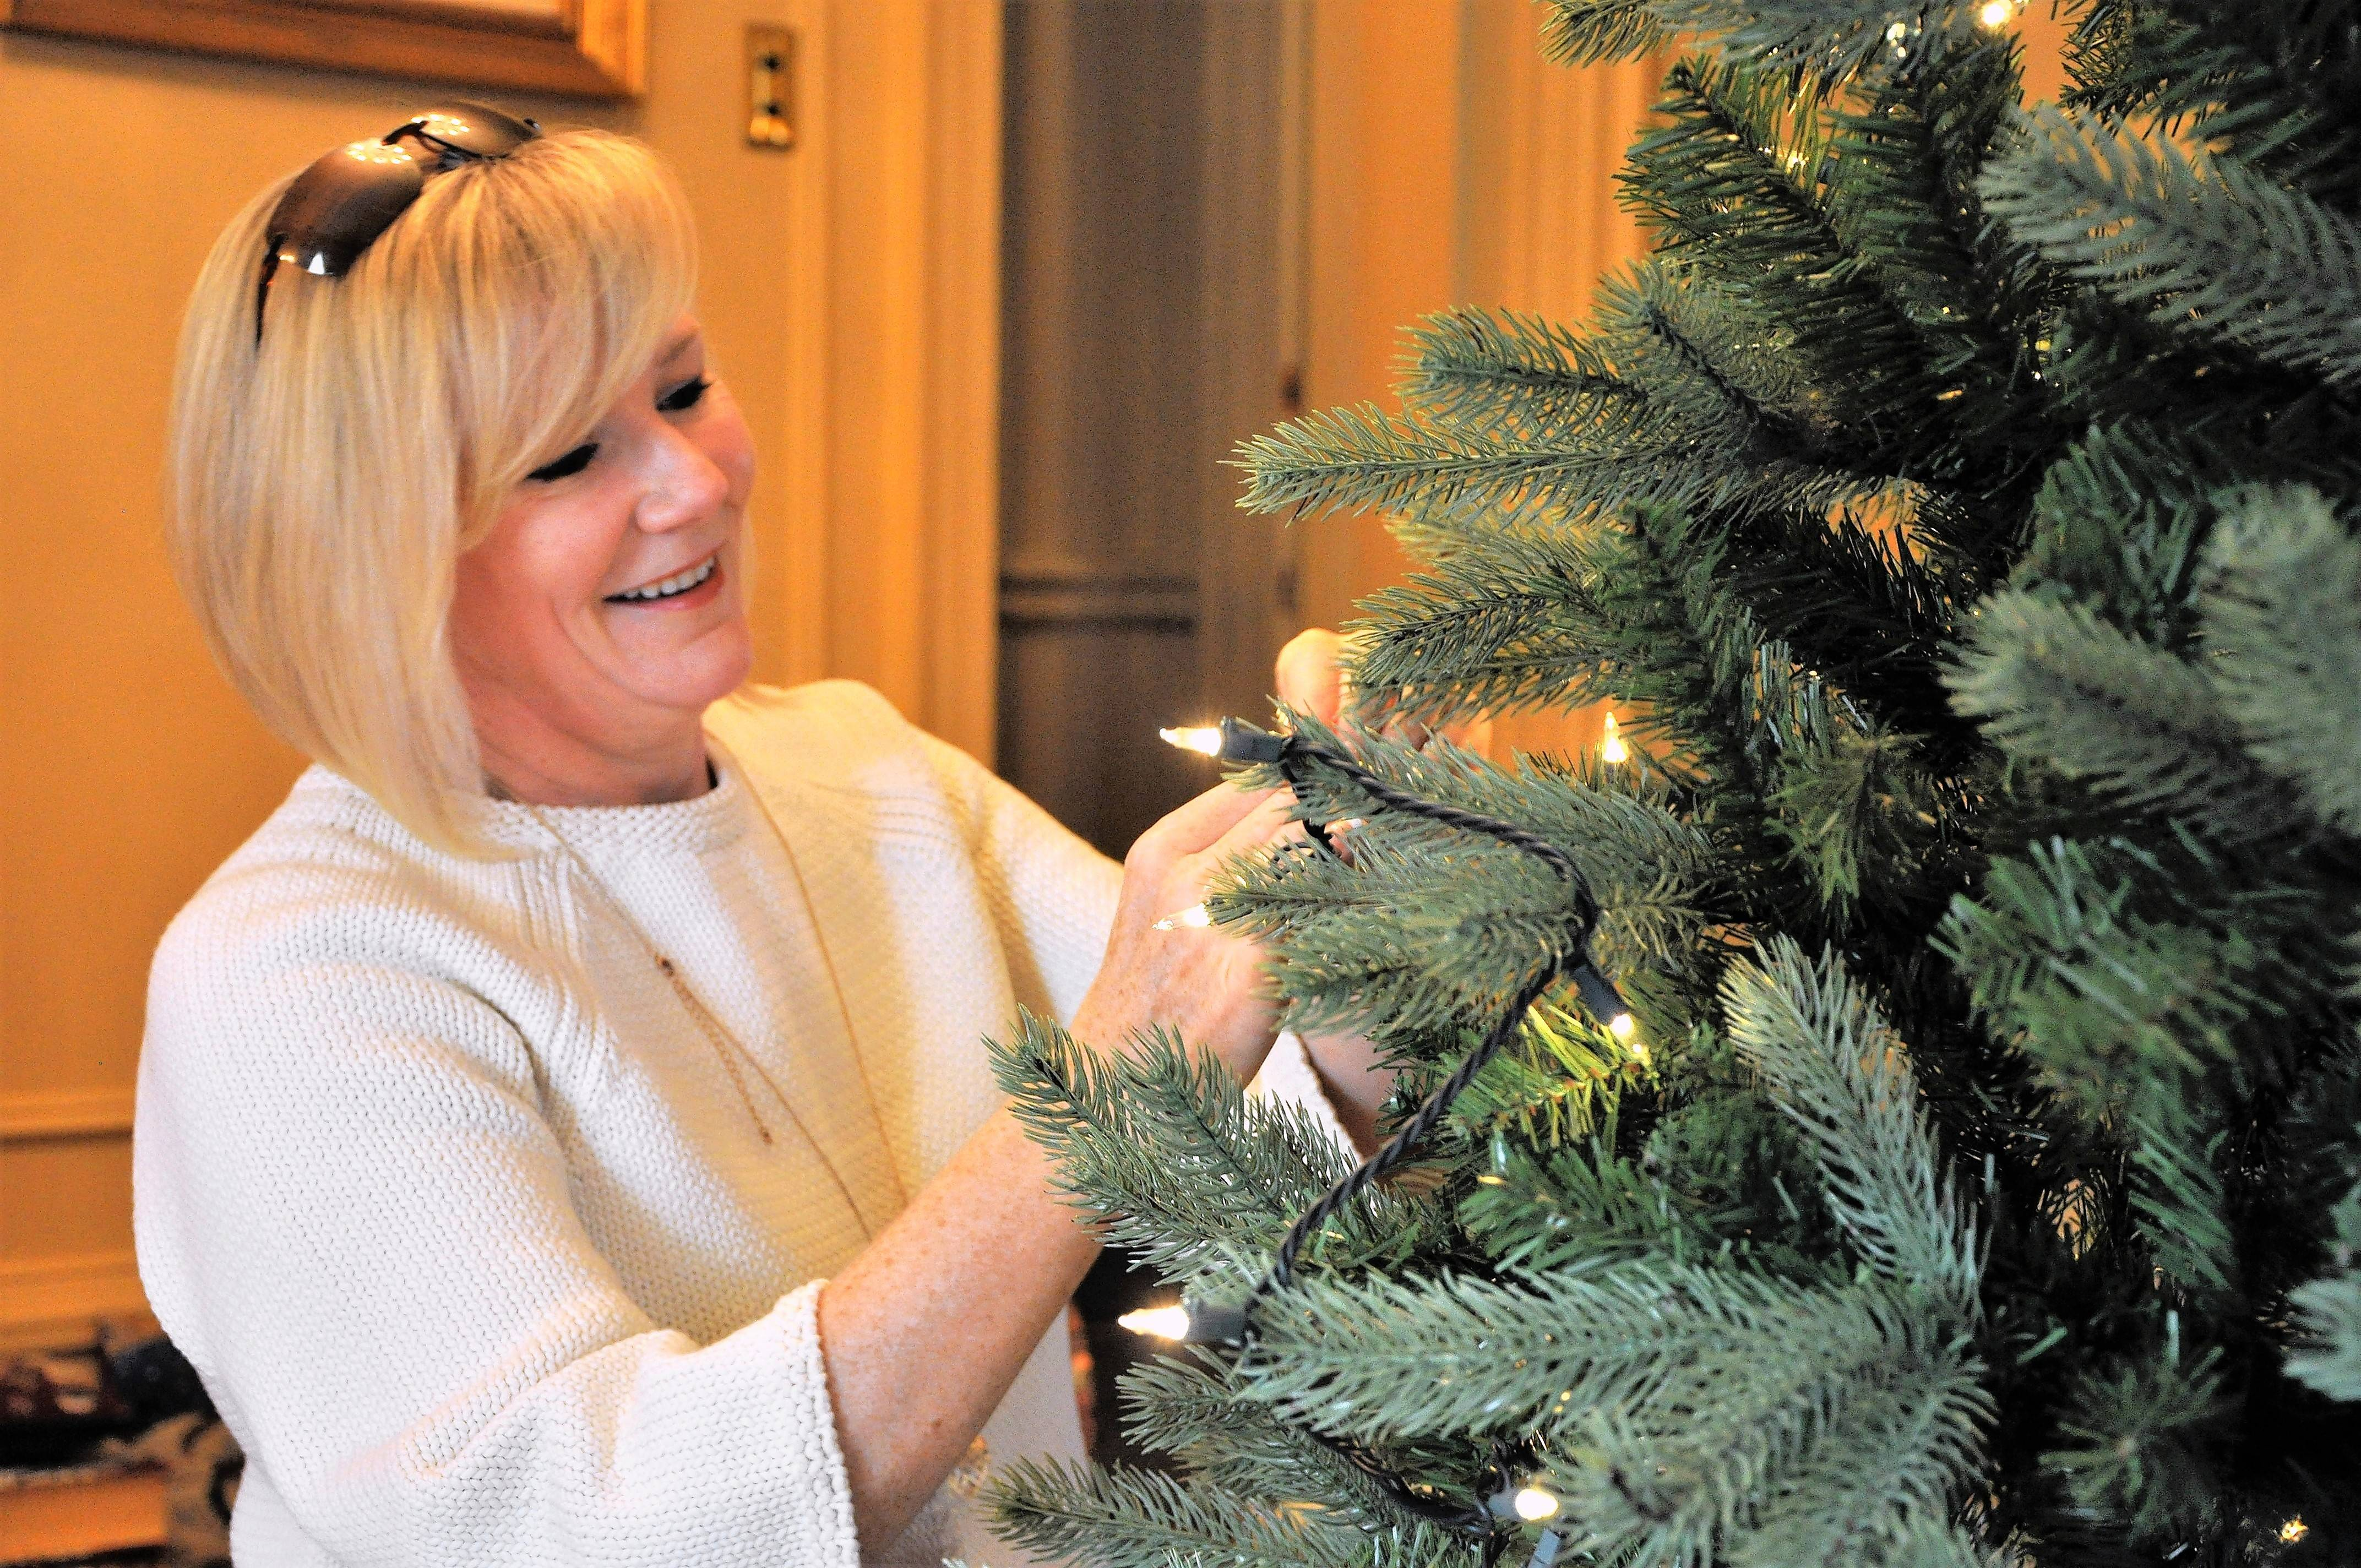 Dawn Violetto of Child's Voice in Wood Dale decorates one of the Community Trees in the McCormick Mansion at Cantigny Park in Wheaton.